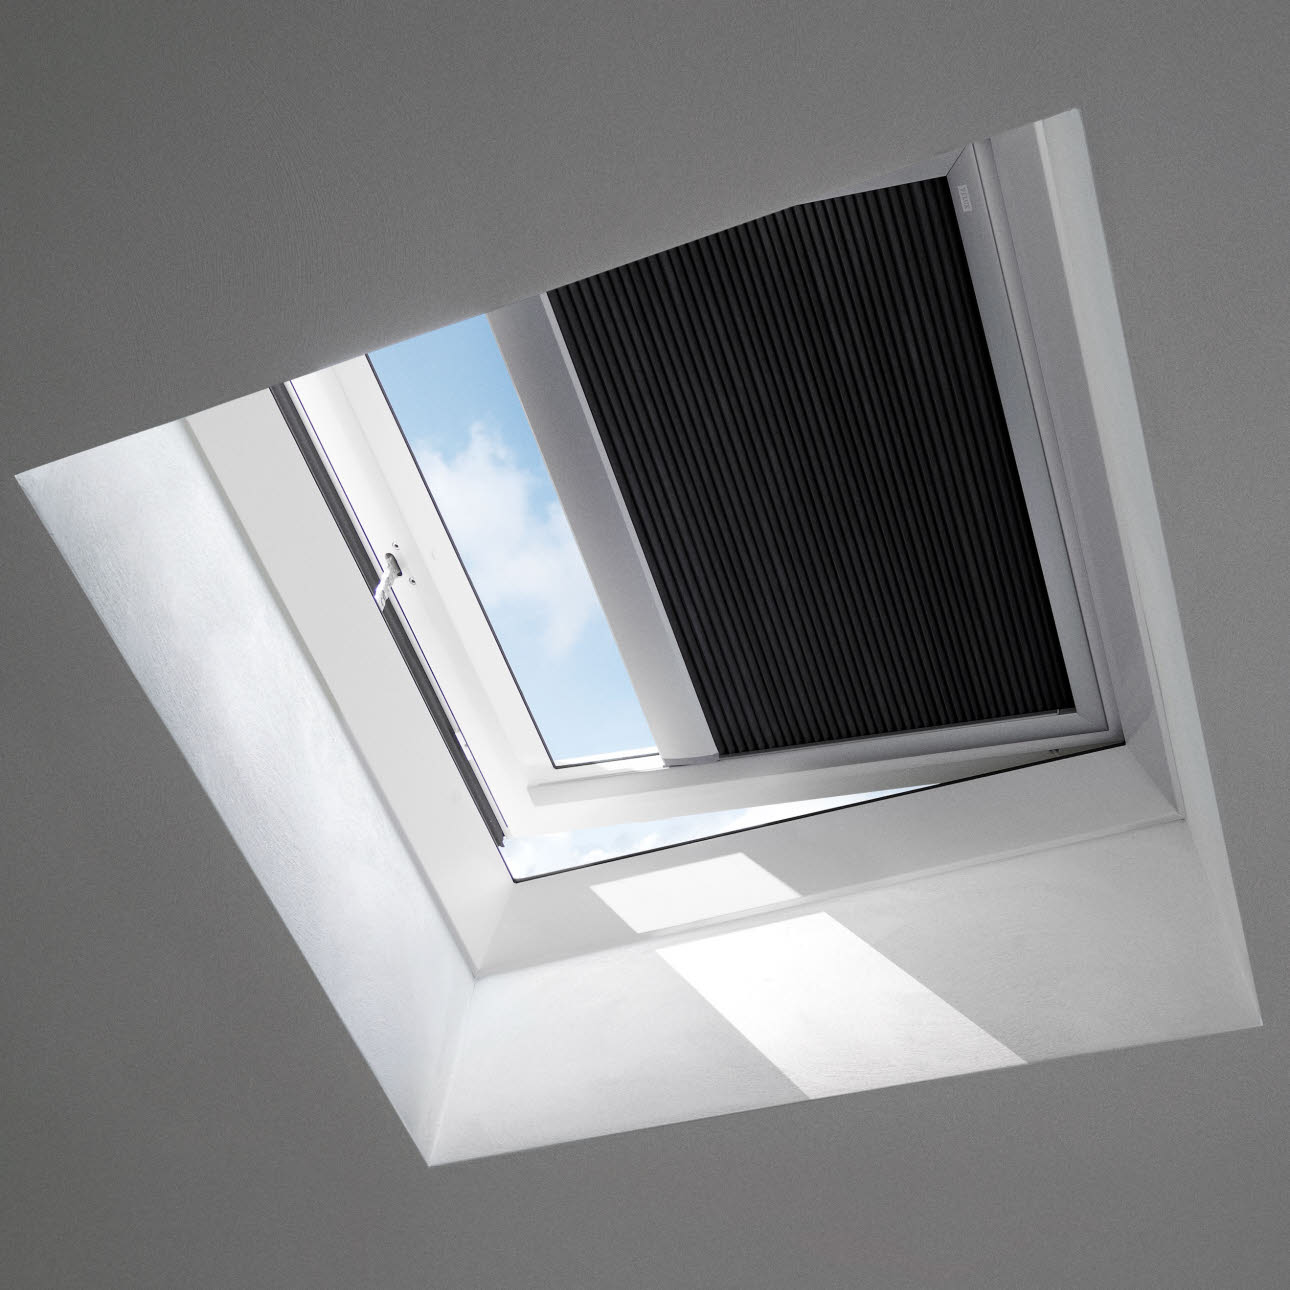 Flat roof Velux window with black blind, interior shot